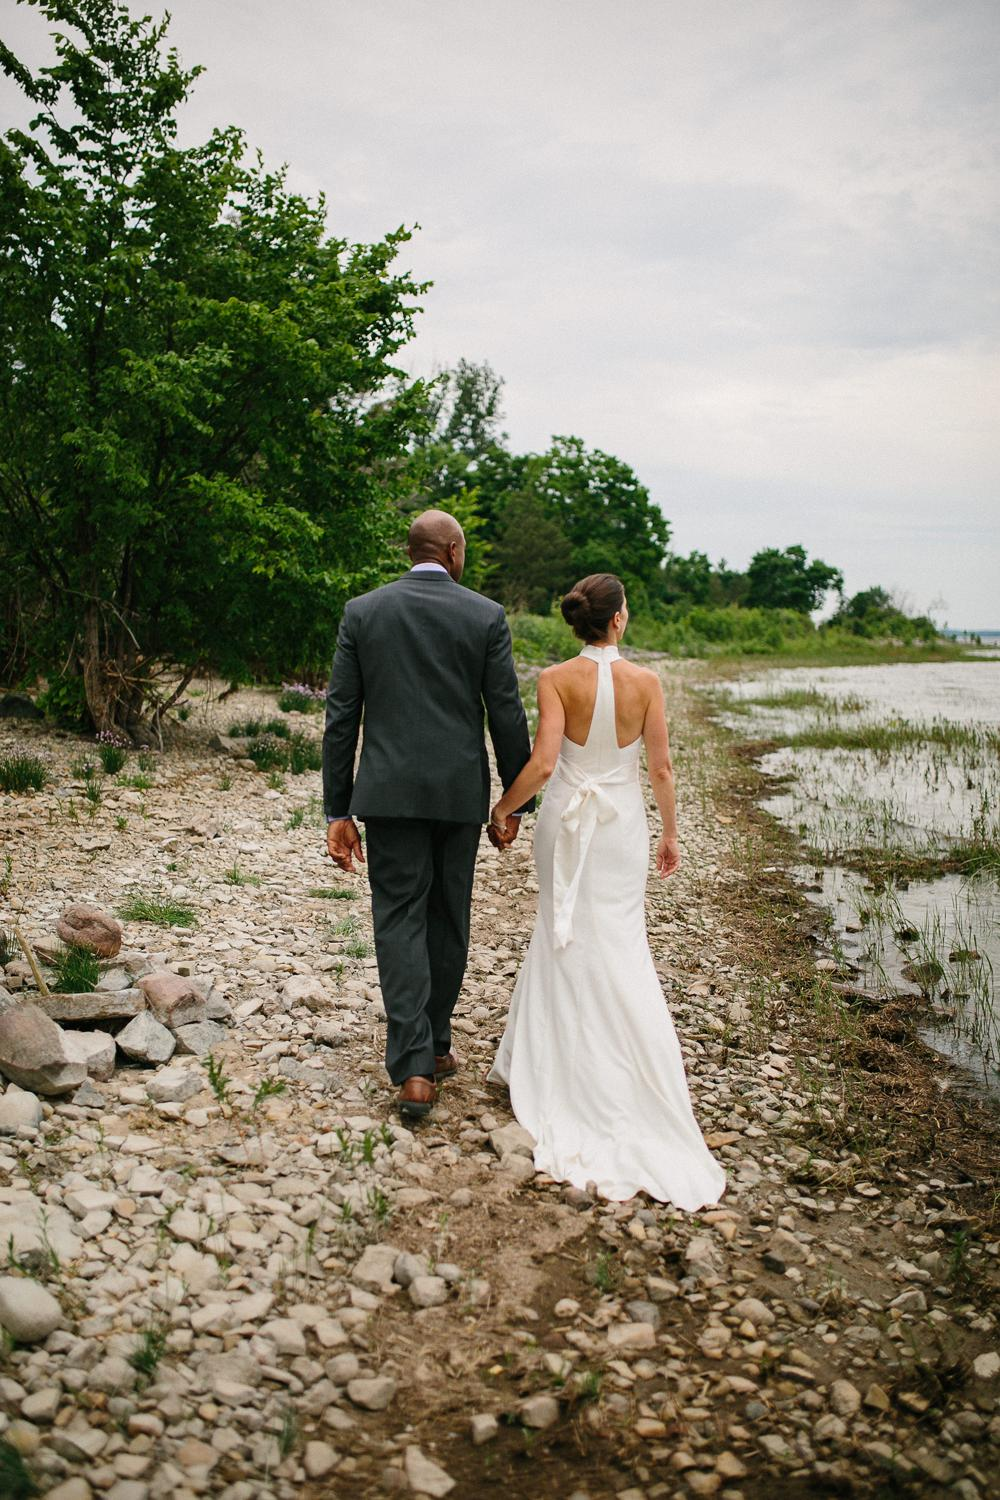 ottawa river small intimate wedding-159.jpg